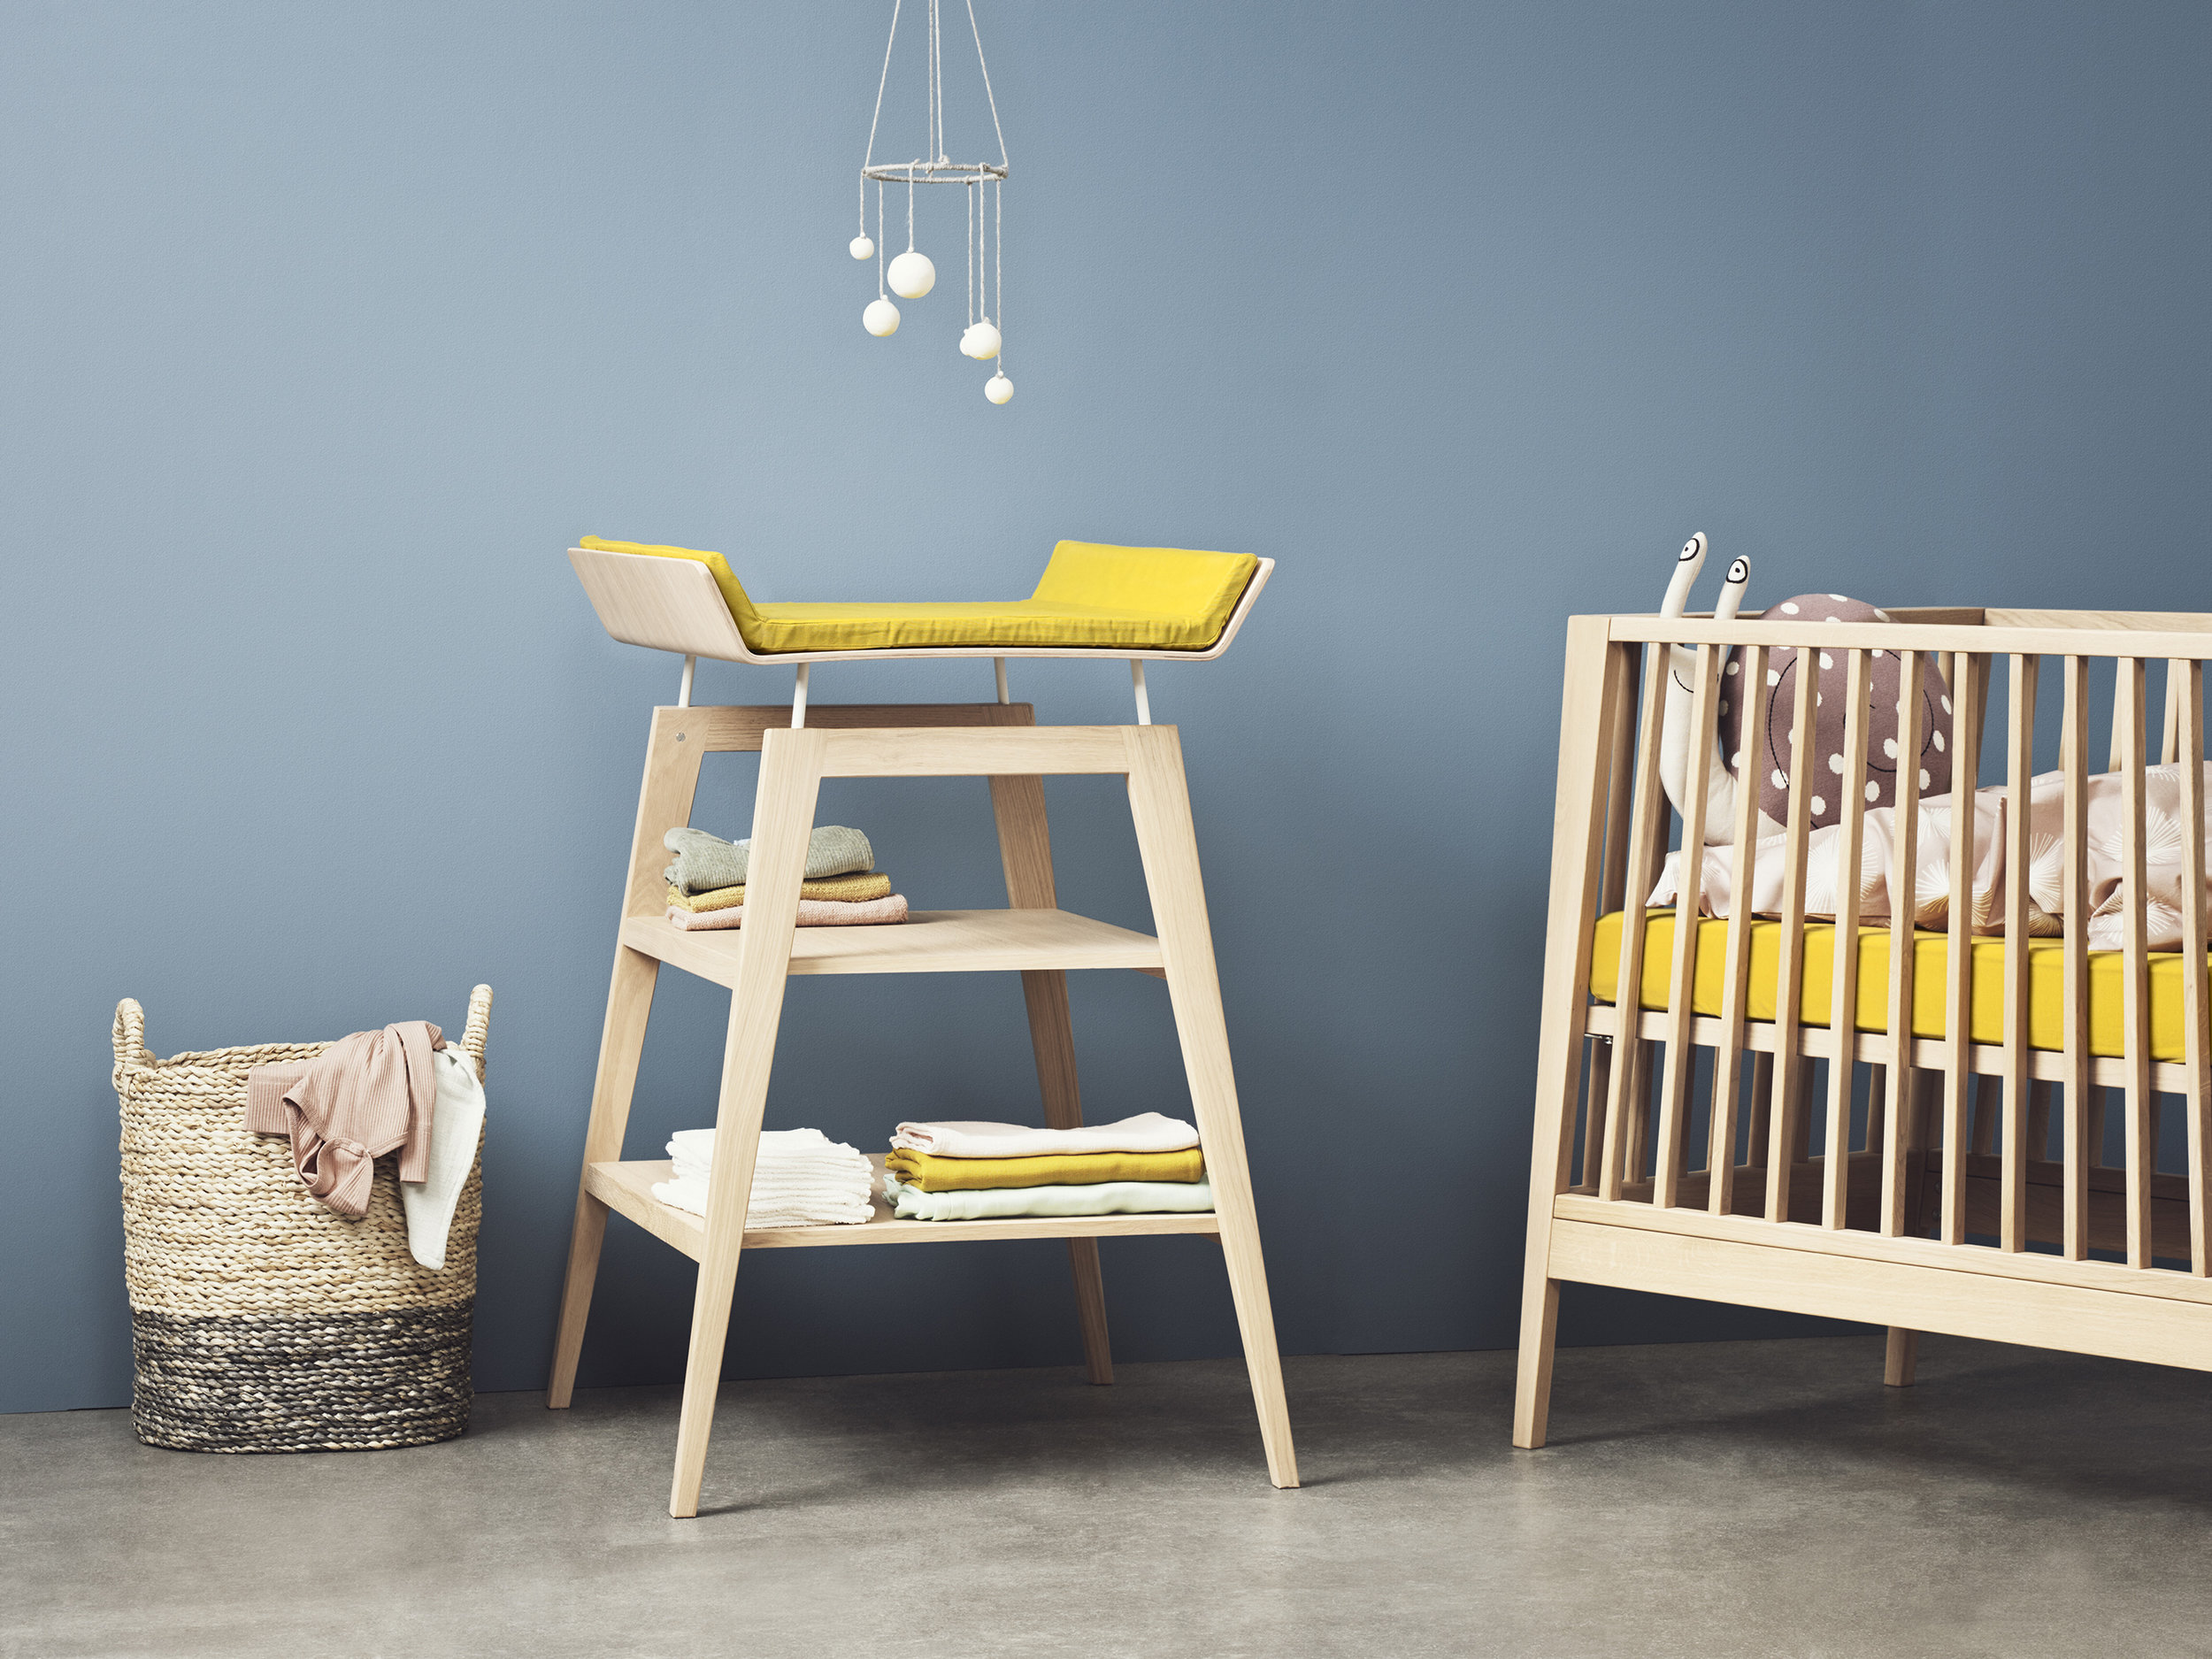 This Linea Changing Table with Foam Mat in Solid Oak by luxury nursery furniture designer Leander is just one of the fabulous products we are delighted to add to the Cuckooland nest. Designed and made in Denmark, these quality innovative pieces add a touch of class to any child's bedroom. Linea means line. The collection reflects its name with clean sharp lines and an edgy urban feel yet still remaining feminine, sophisticated and soft. Whilst changing a baby's nappy, you are given precious quality time to spend with your little one.     The Changing Table is a place for cuddles, giggles, heart melting and making memories. And let's face it, anything that can make the not-so-pleasant job of bottom wiping more bearable is money well spent! Part of the Linea nursery range, this contemporary changing table has safety at its core with raised sides to prevent your baby from rolling off the edges. Its height can also be adjusted so that whoever lands the task of nappy duty is able to work comfortably at an optimal height ensuring there are no aching backs (to go with the sleepless nights!) No child should ever be left unattended on a changing table, so the handy shelves have been designed to allow you to easily reach all essential bits and bobs you might need without having to leave the baby changing zone!